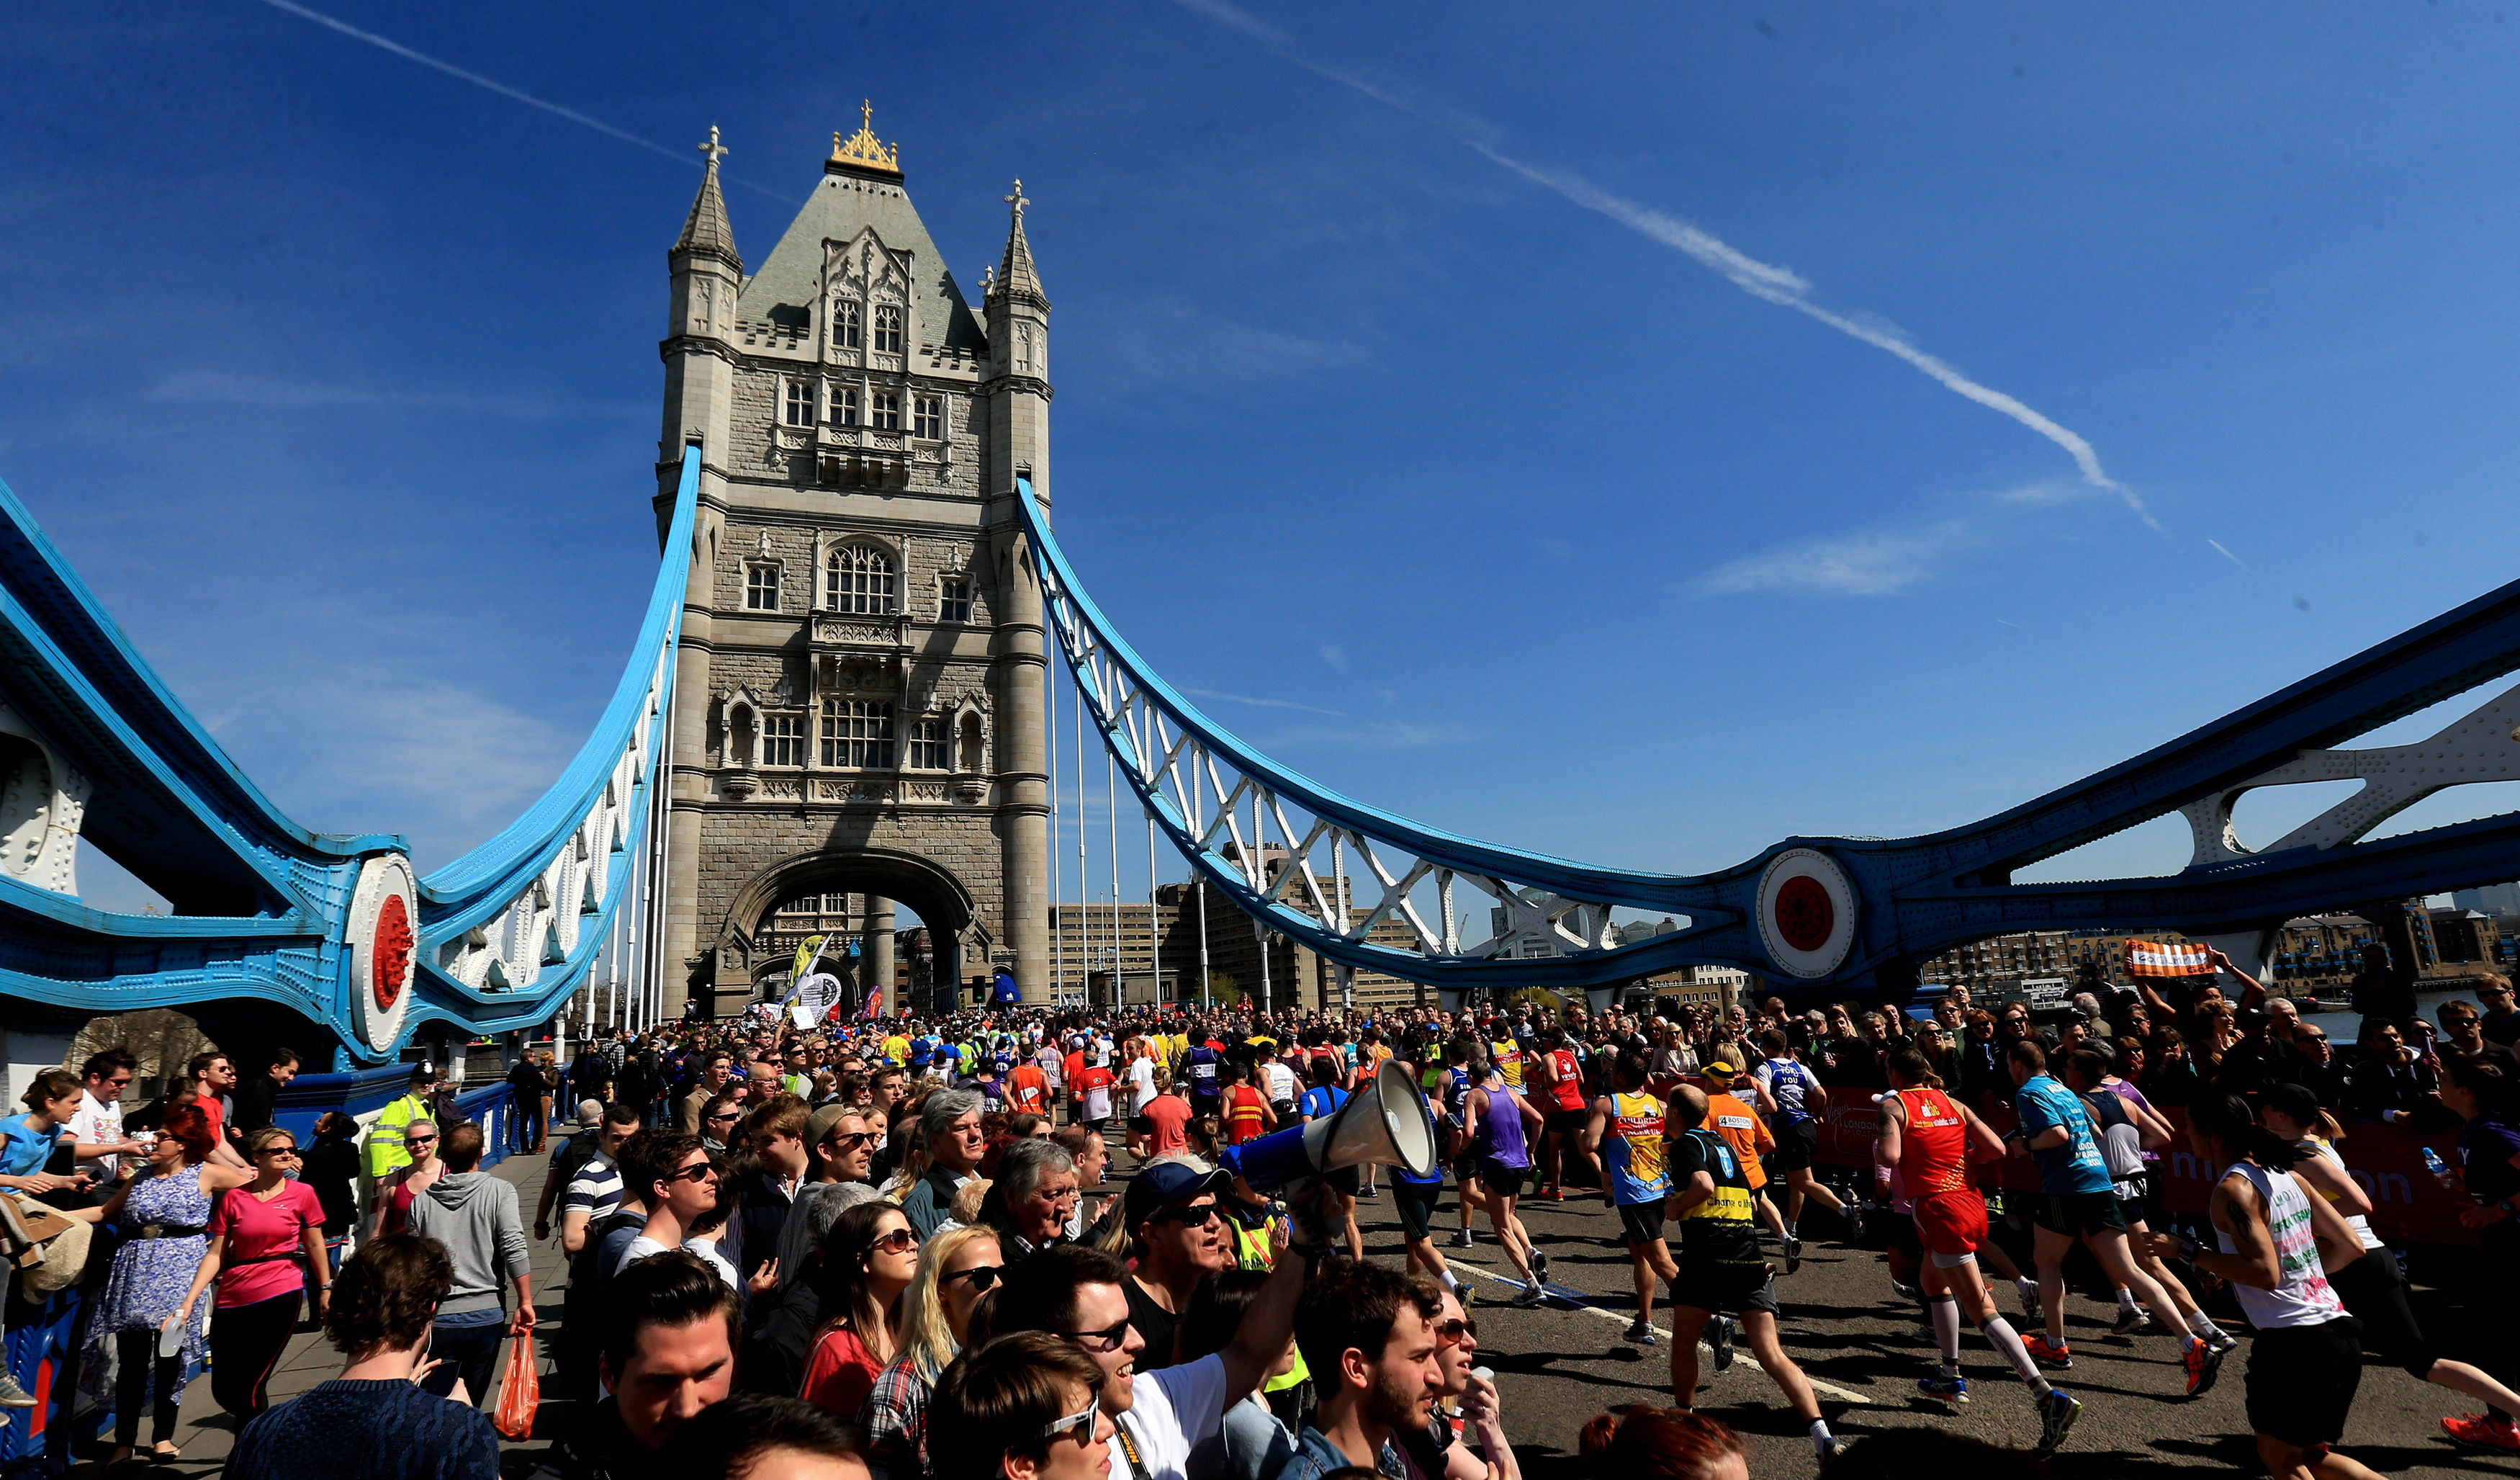 Spectators watch as runners cross Tower Bridge during the Virgin London Marathon in London.